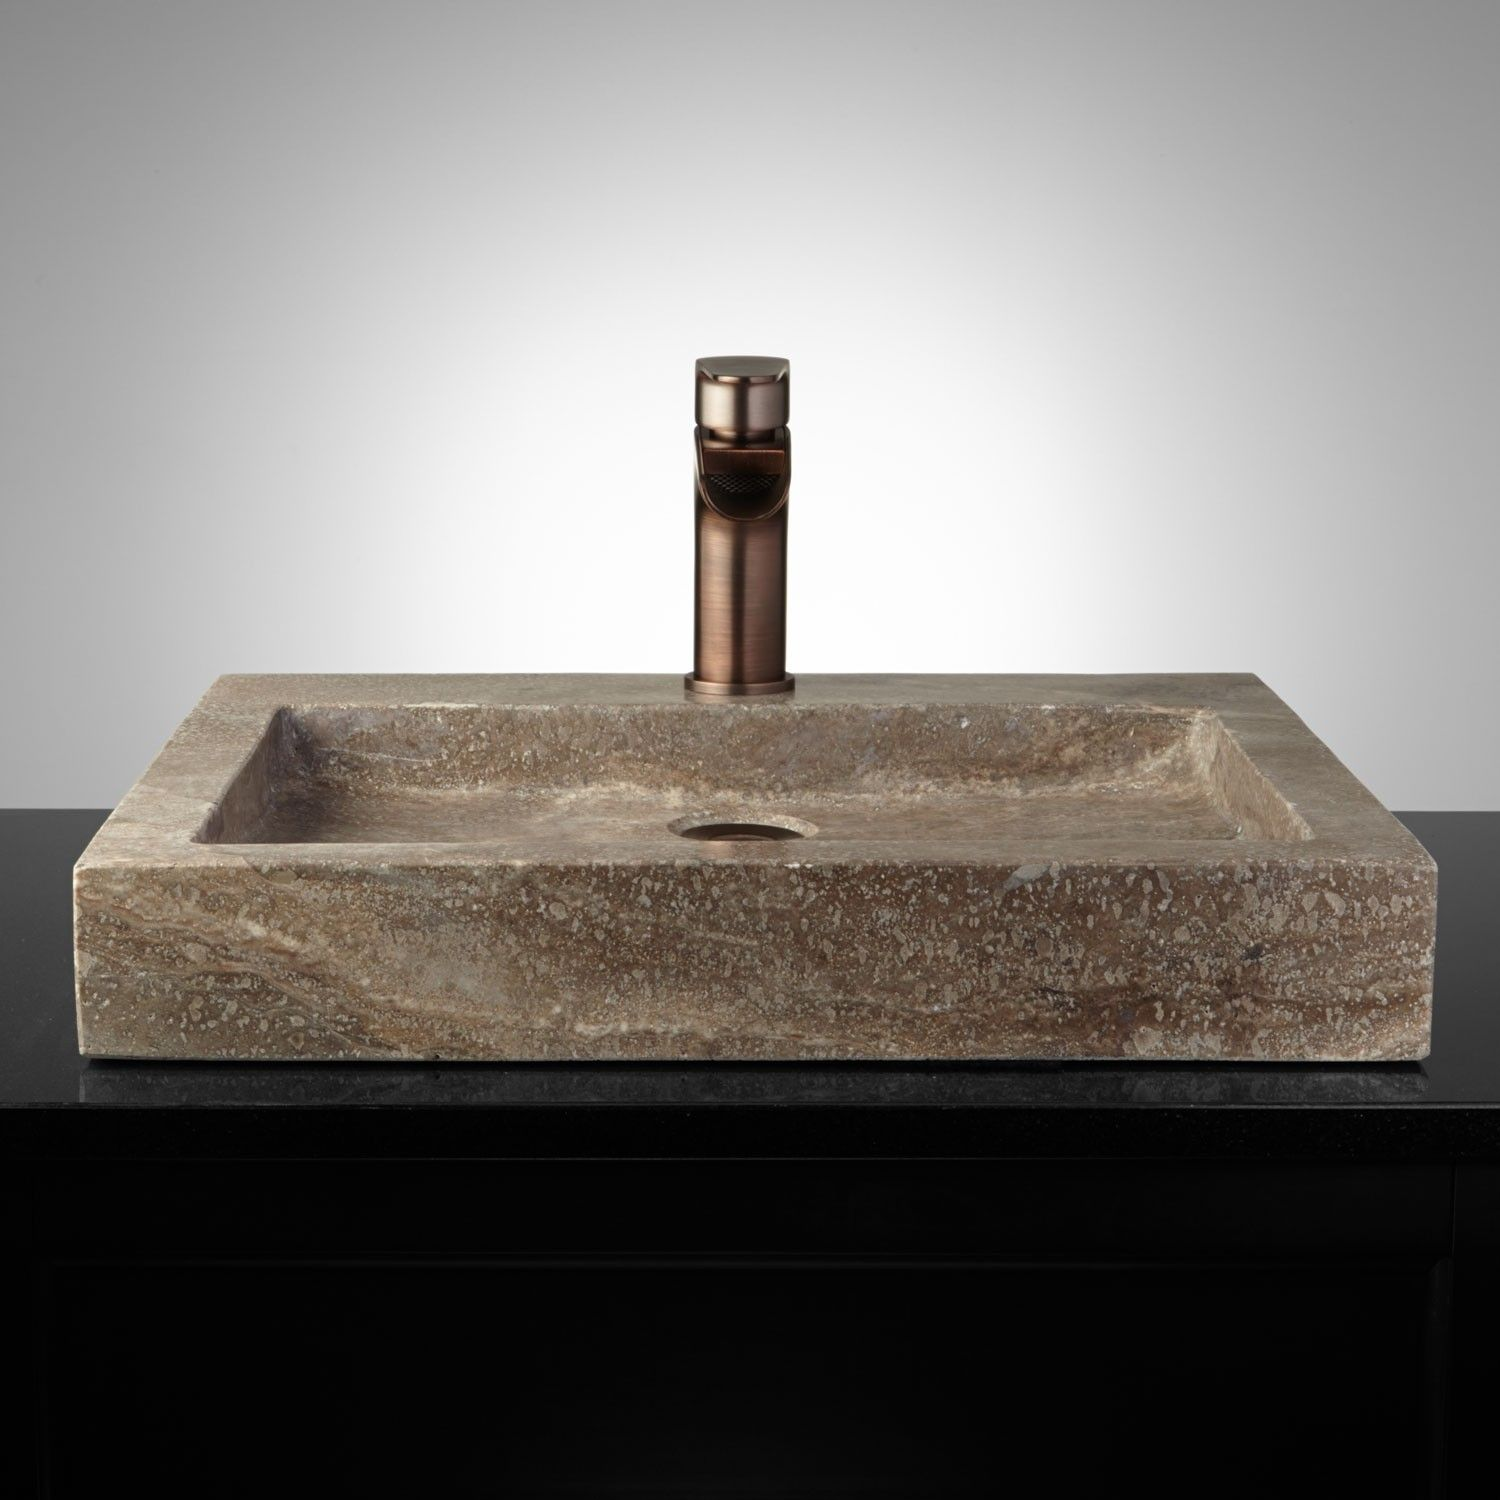 Square Polished Travertine Vessel Sink Sink Vessel Sink Vessel